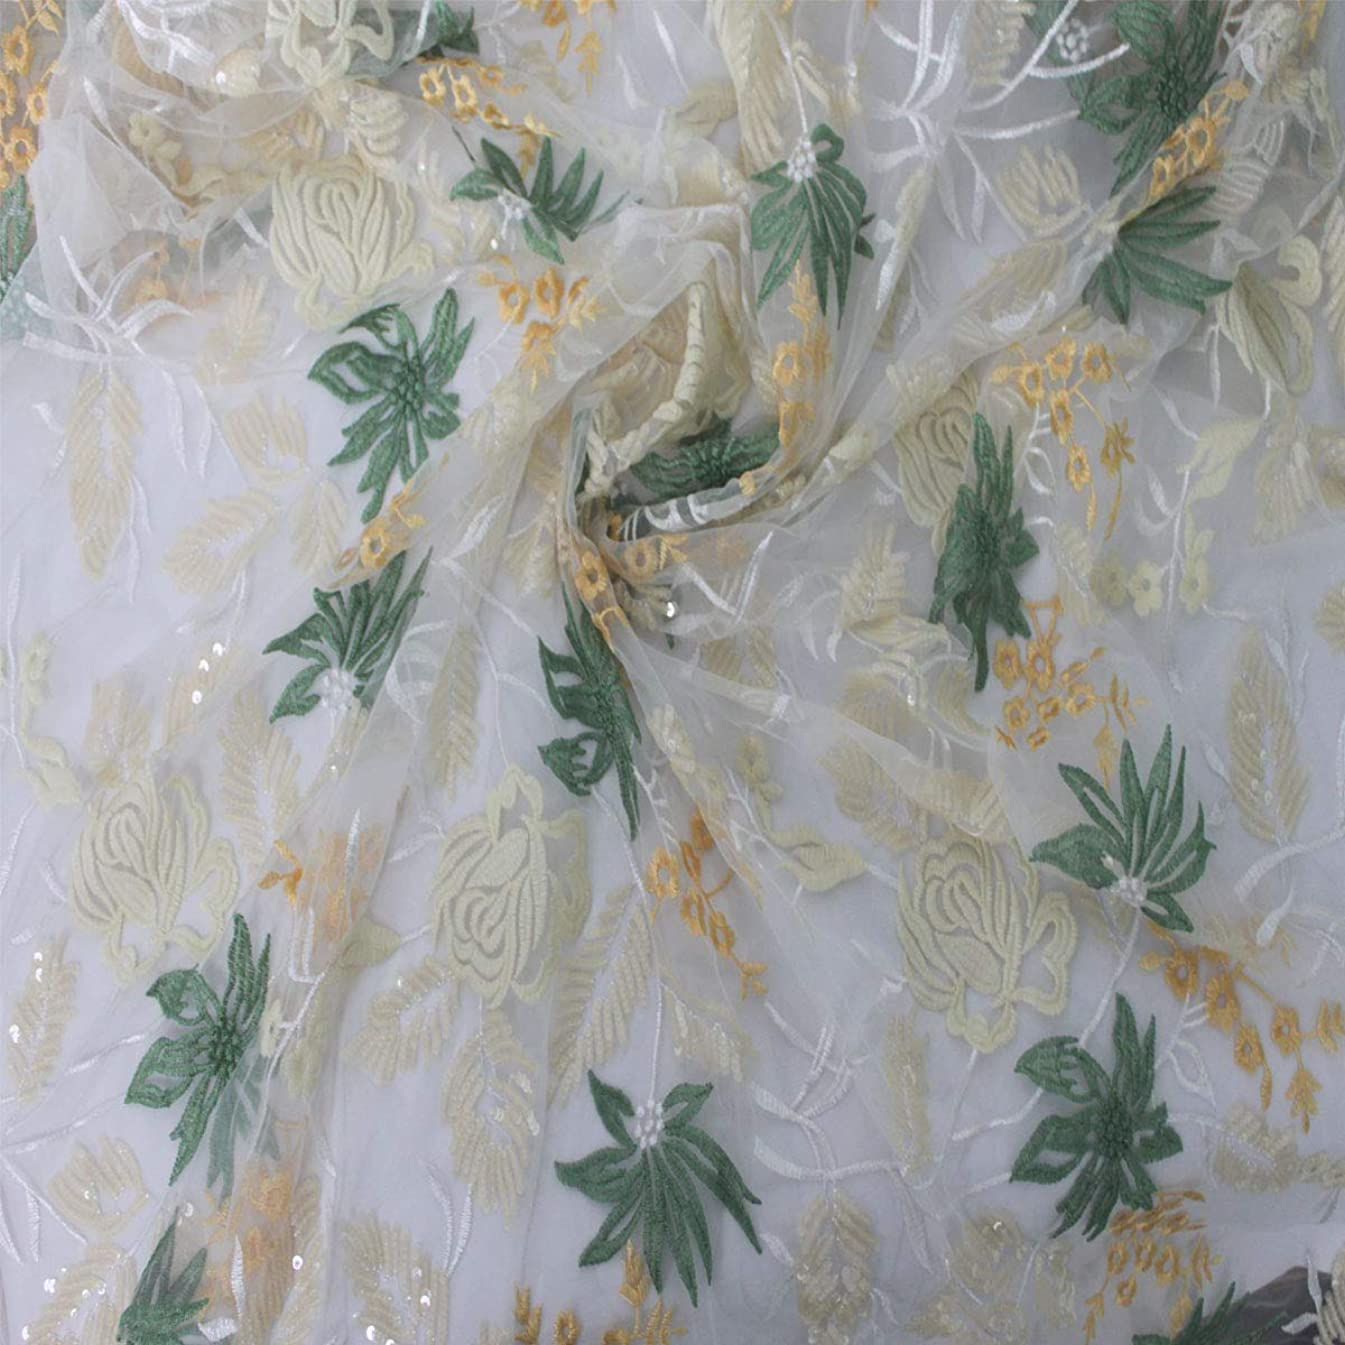 Lacerain 5 Yards African Net Lace Fabrics Nigerian French Fabric Embroidery Lace(White)